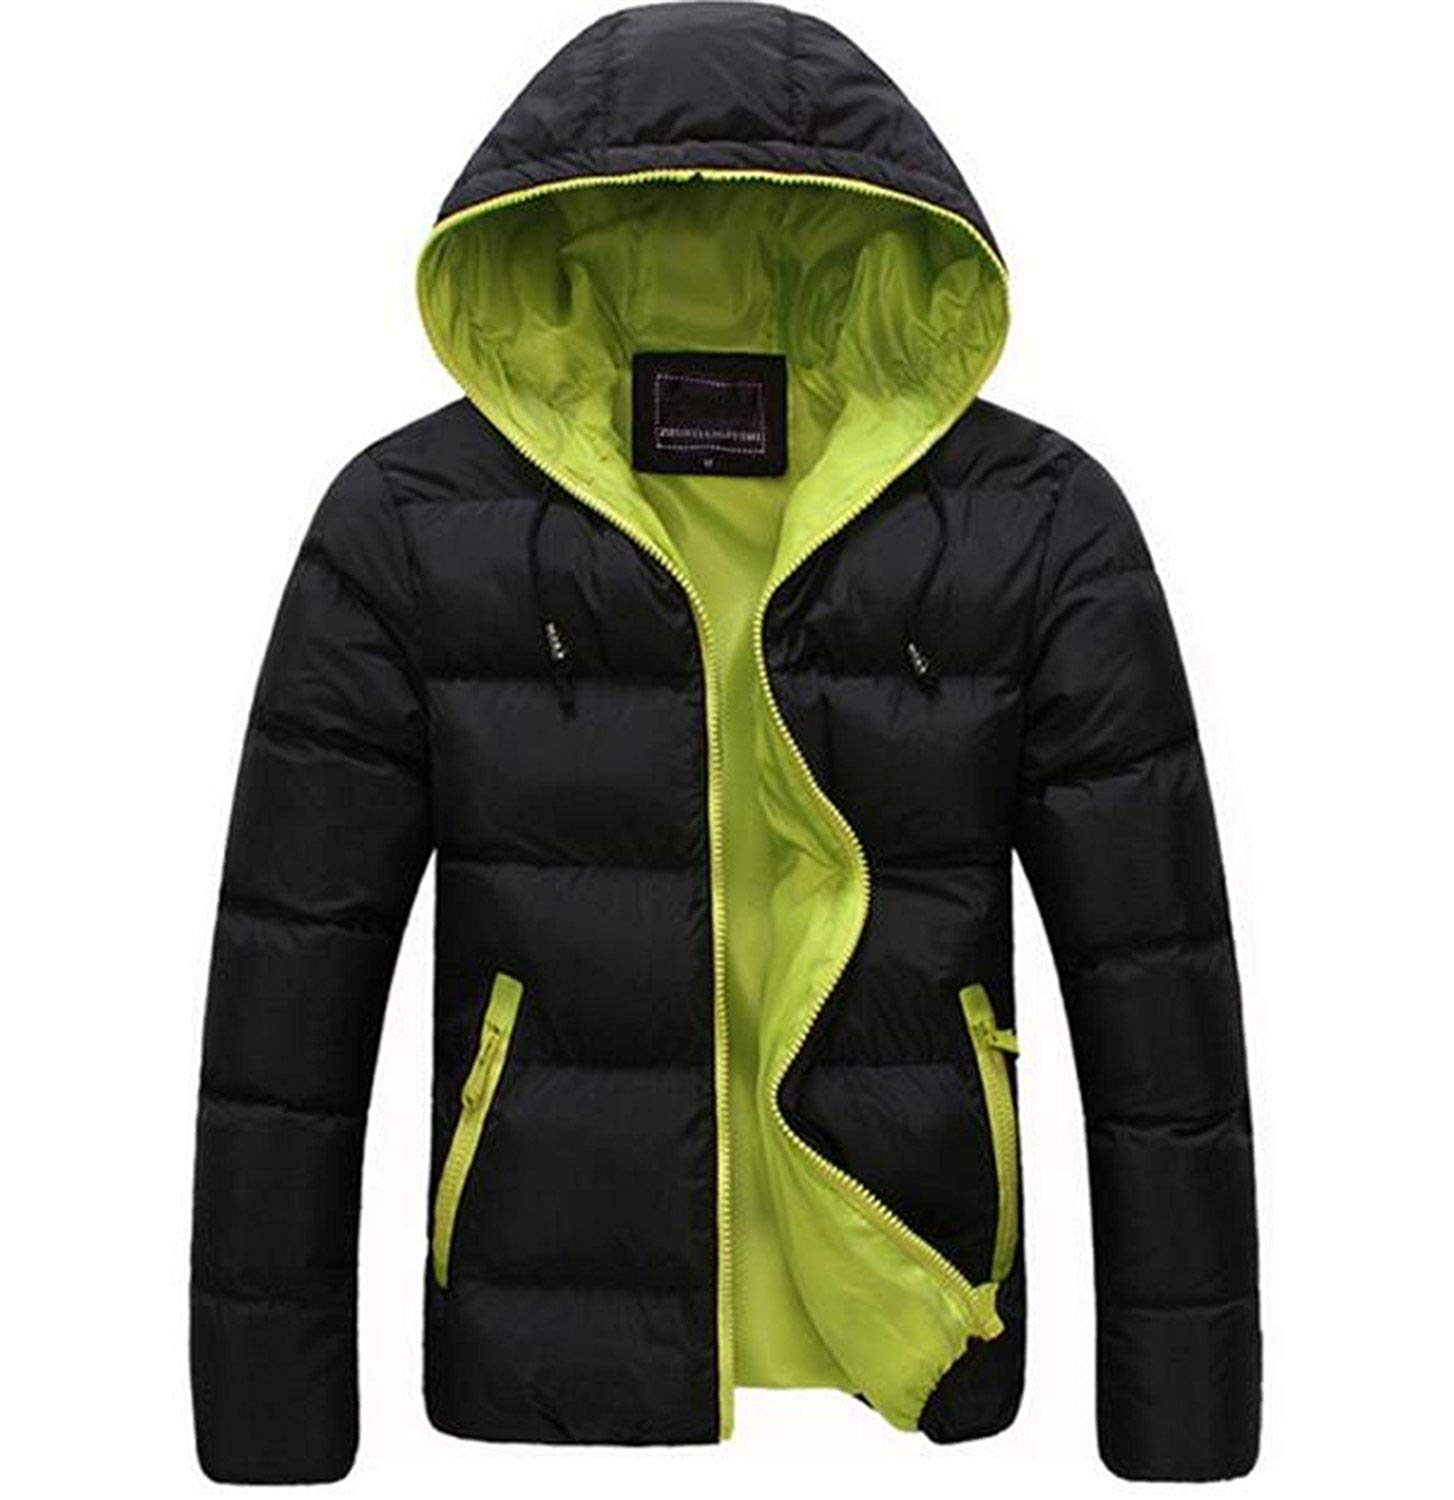 Ptyhk RG Men Big And Tall Fleece Hoodies Padded Coat Outdoor Parka Outwear